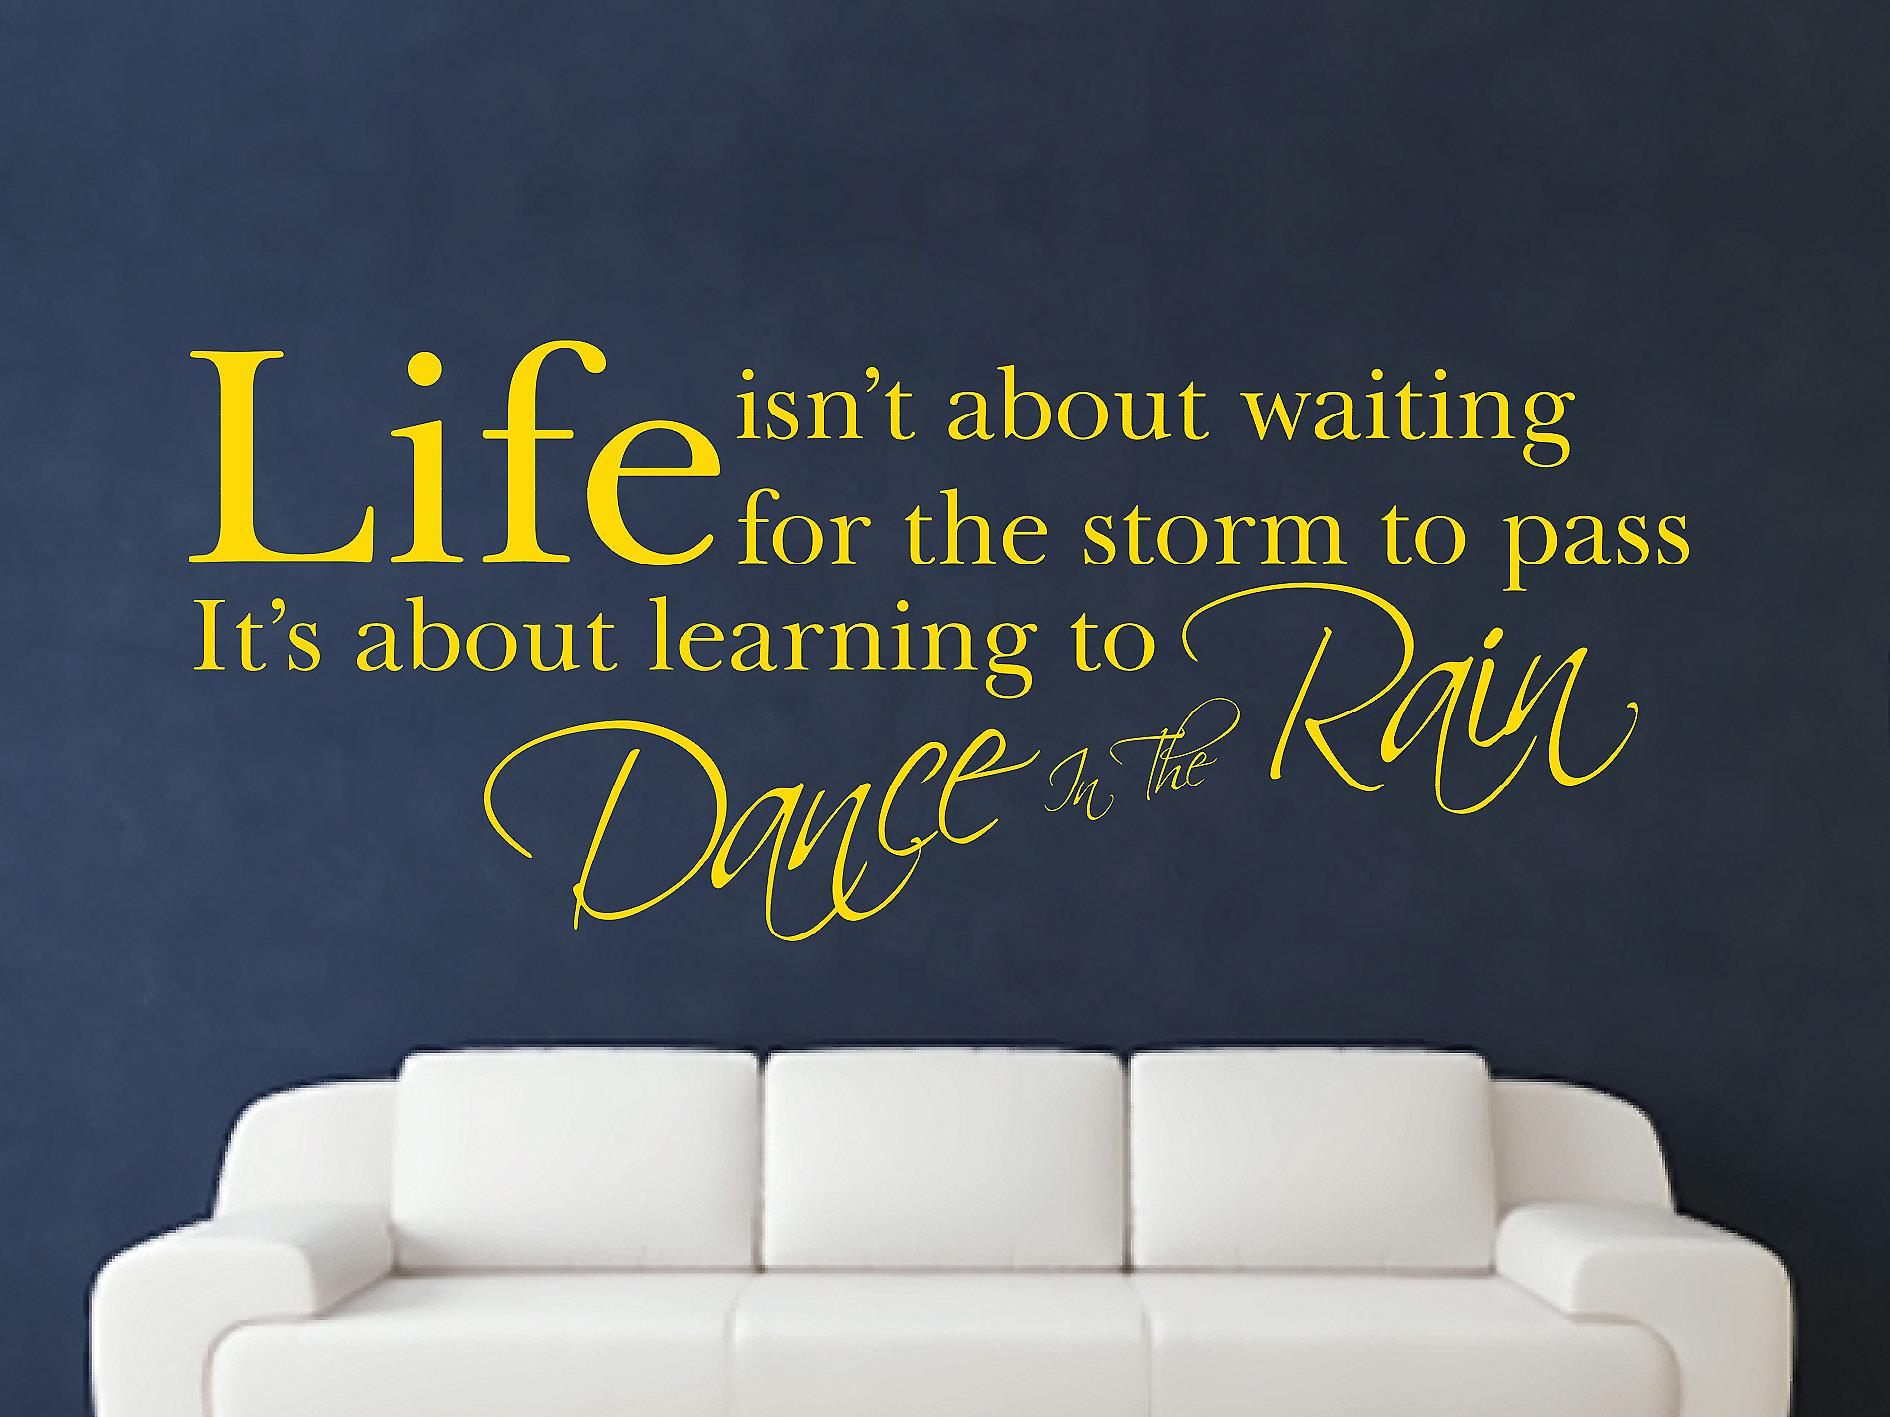 Dance In The Rain Wall Art Sticker - Dark Yellow